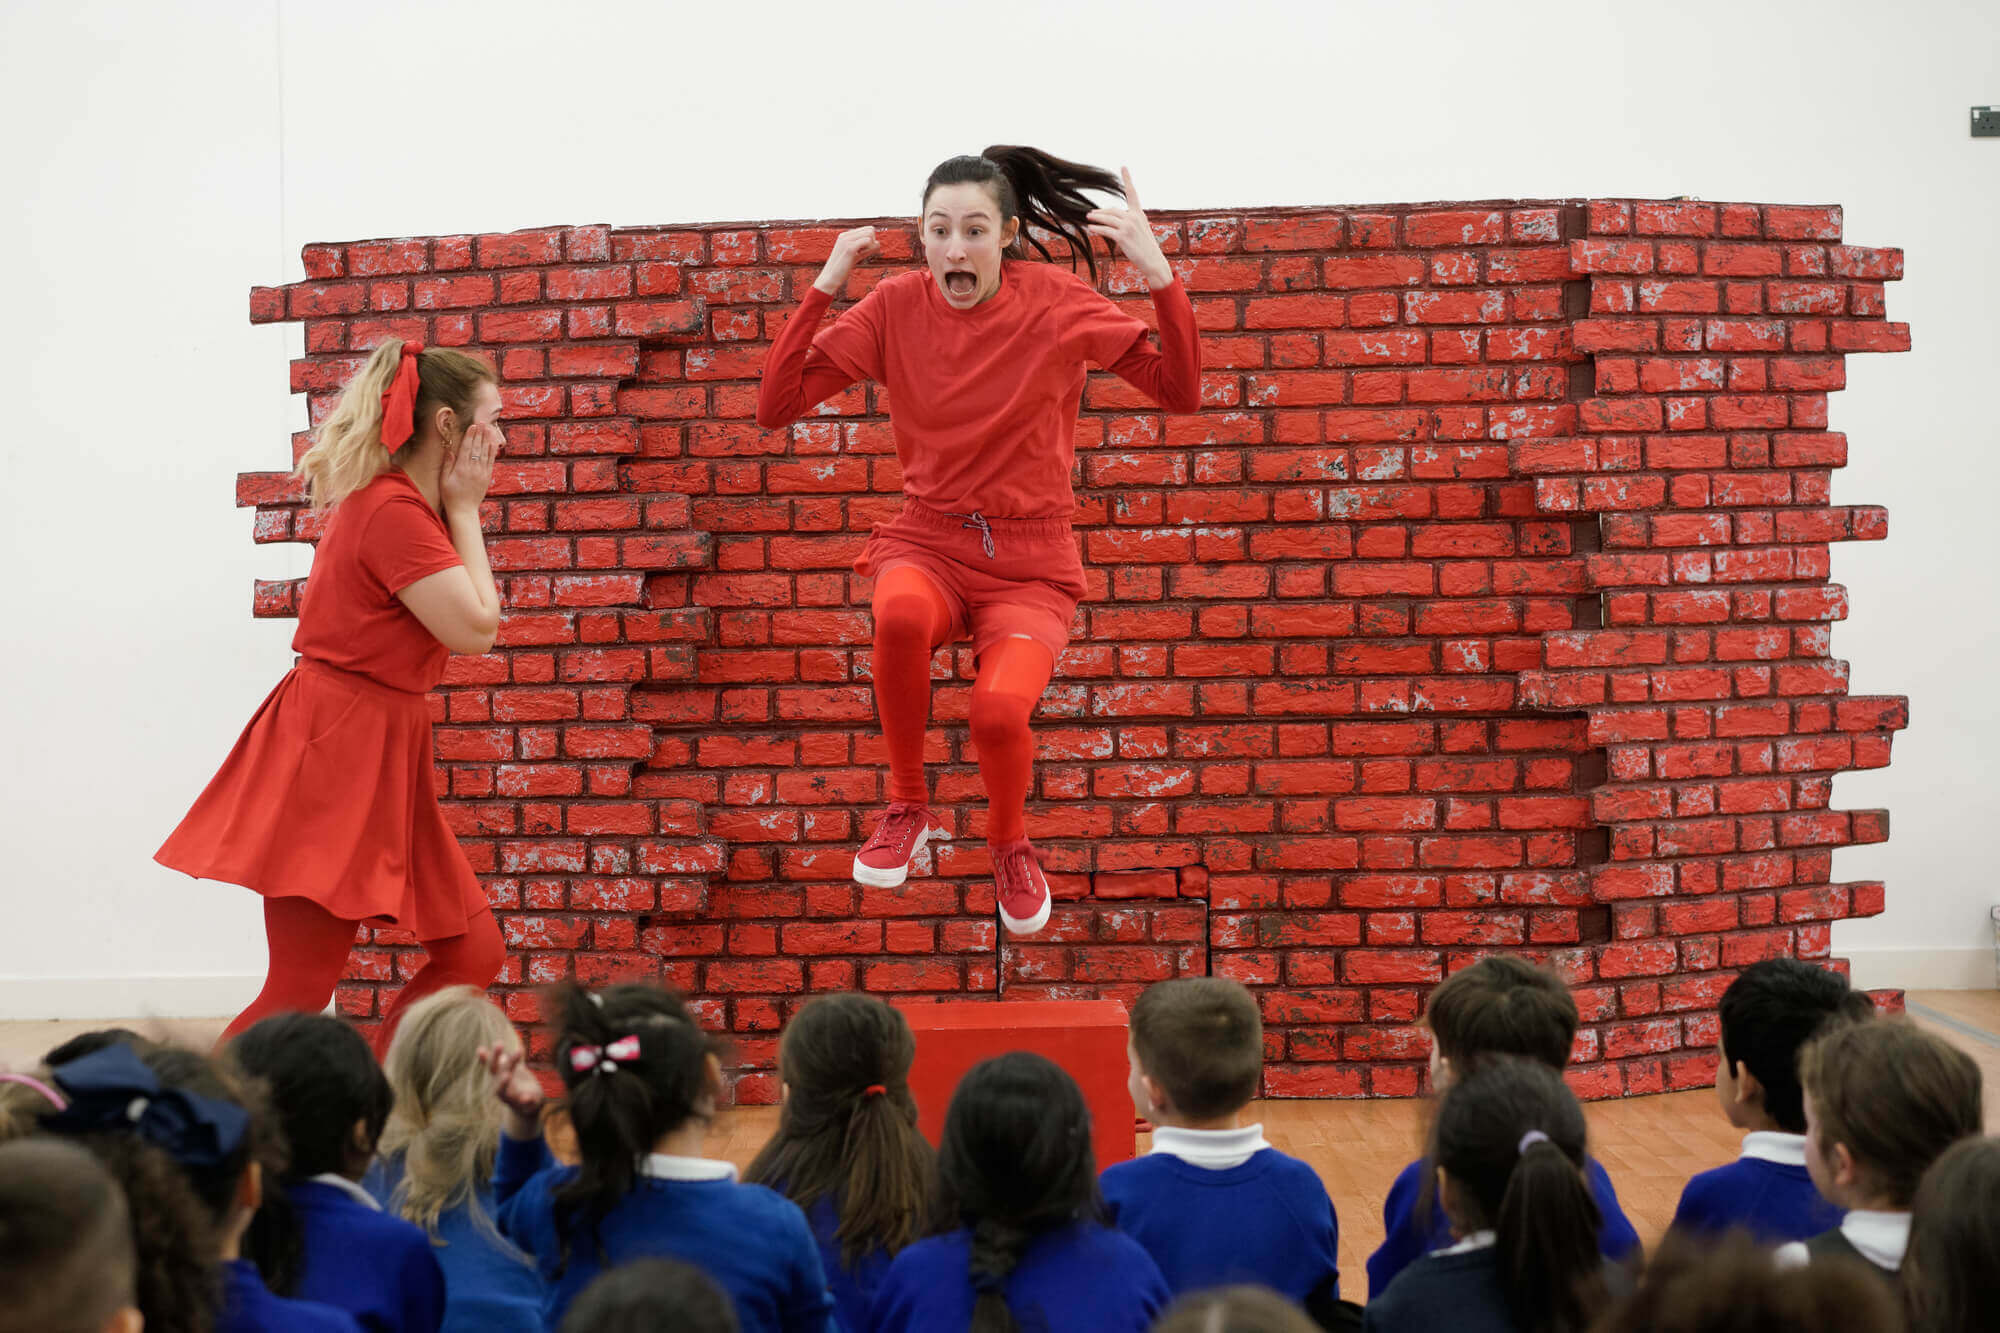 A woman in a red tracksuit jumps in front of a stage set of a brick wall